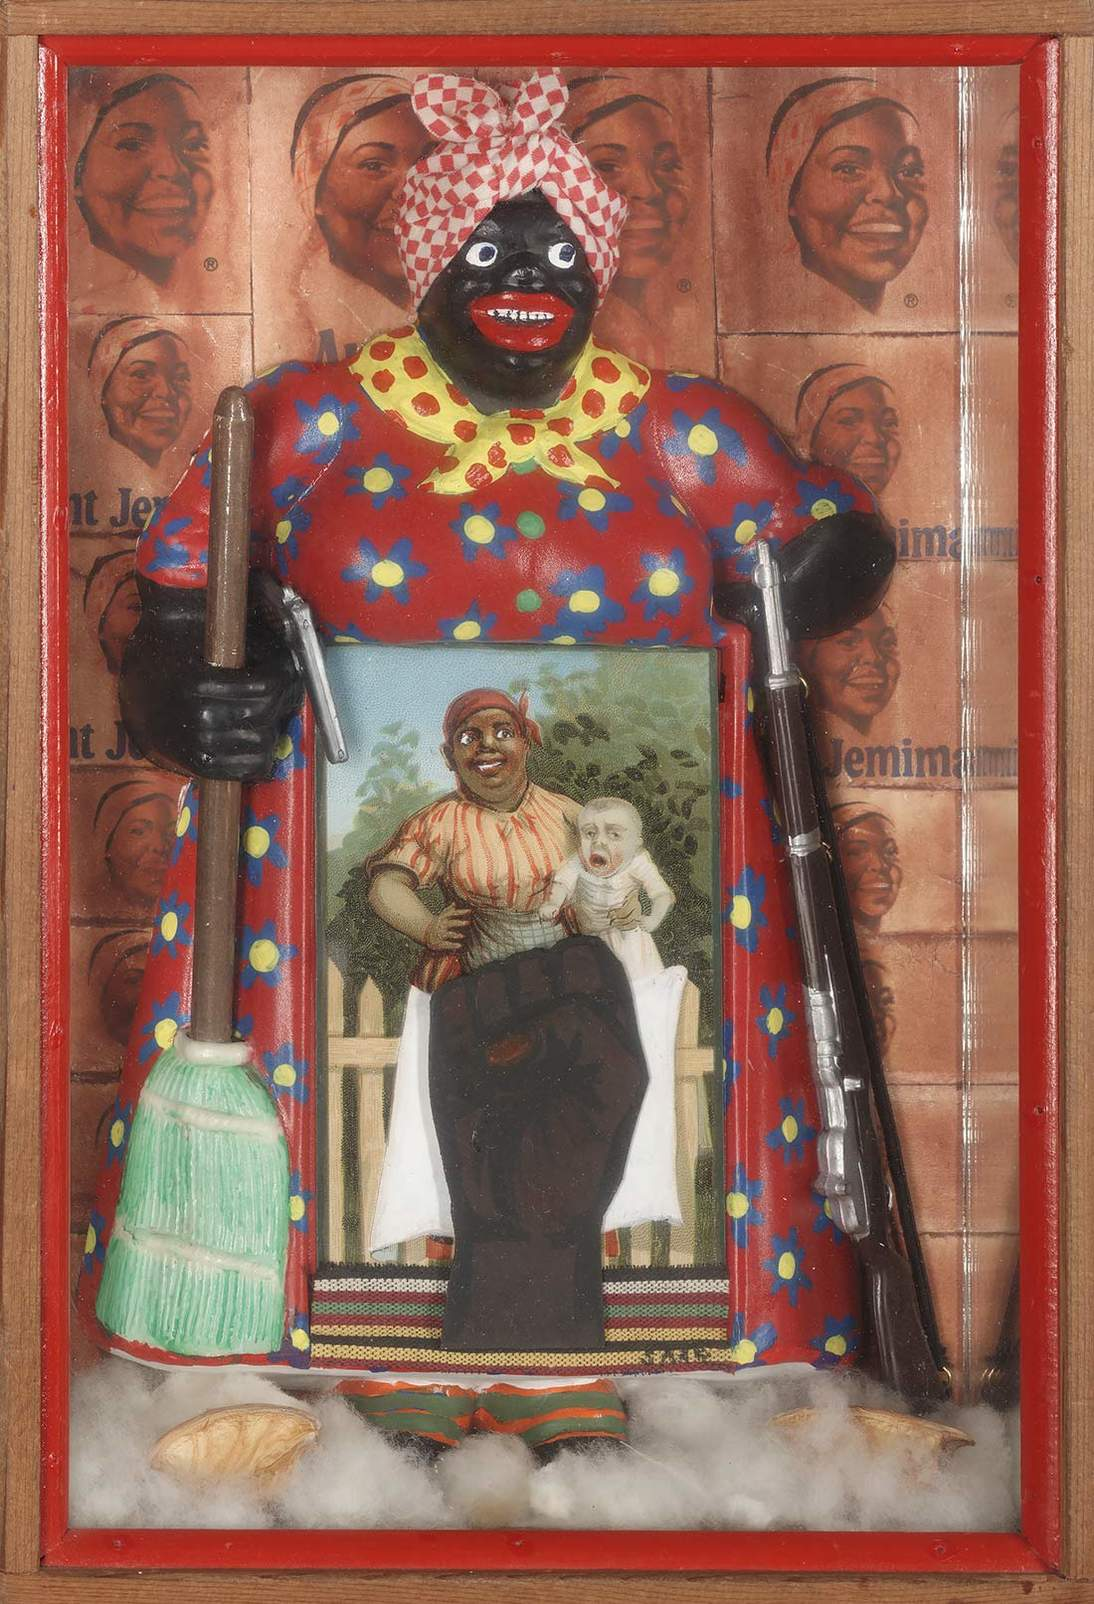 "Betye Saar, ""The Liberation of Aunt Jemima,"" 1972. Wood, cotton, plastic, metal, acrylic paint, printed paper and fabric,  11.375 x 8 in. (29.8 x 20.3 cm). Collection of Berkeley Art Museum and Pacific Film Archive, Berkeley, California; purchased with the aid of funds from the National Endowment for the Arts (selected by The Committee for the Acquisition of Afro-American Art). Courtesy of the artist and Roberts Projects, Los Angeles, California. Photo Benjamin Blackwell"